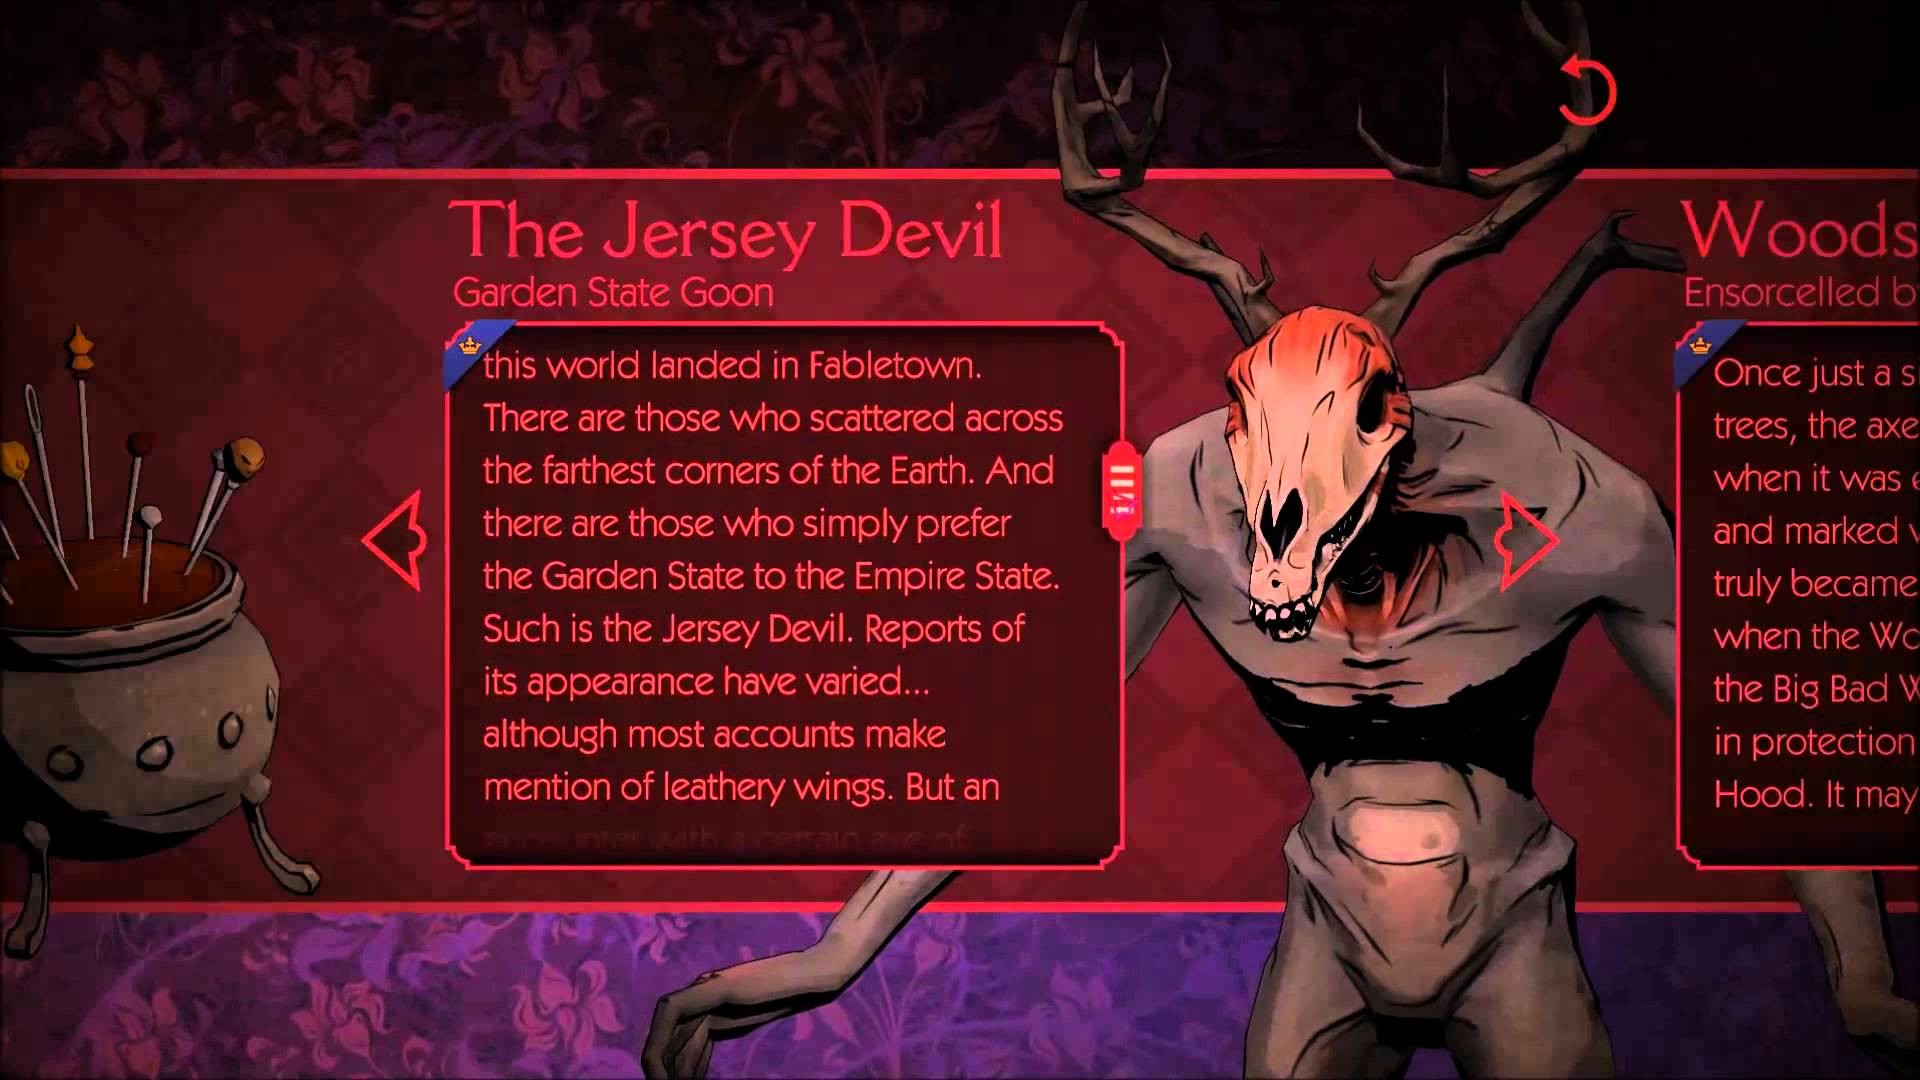 The Jersey Devil's galleries